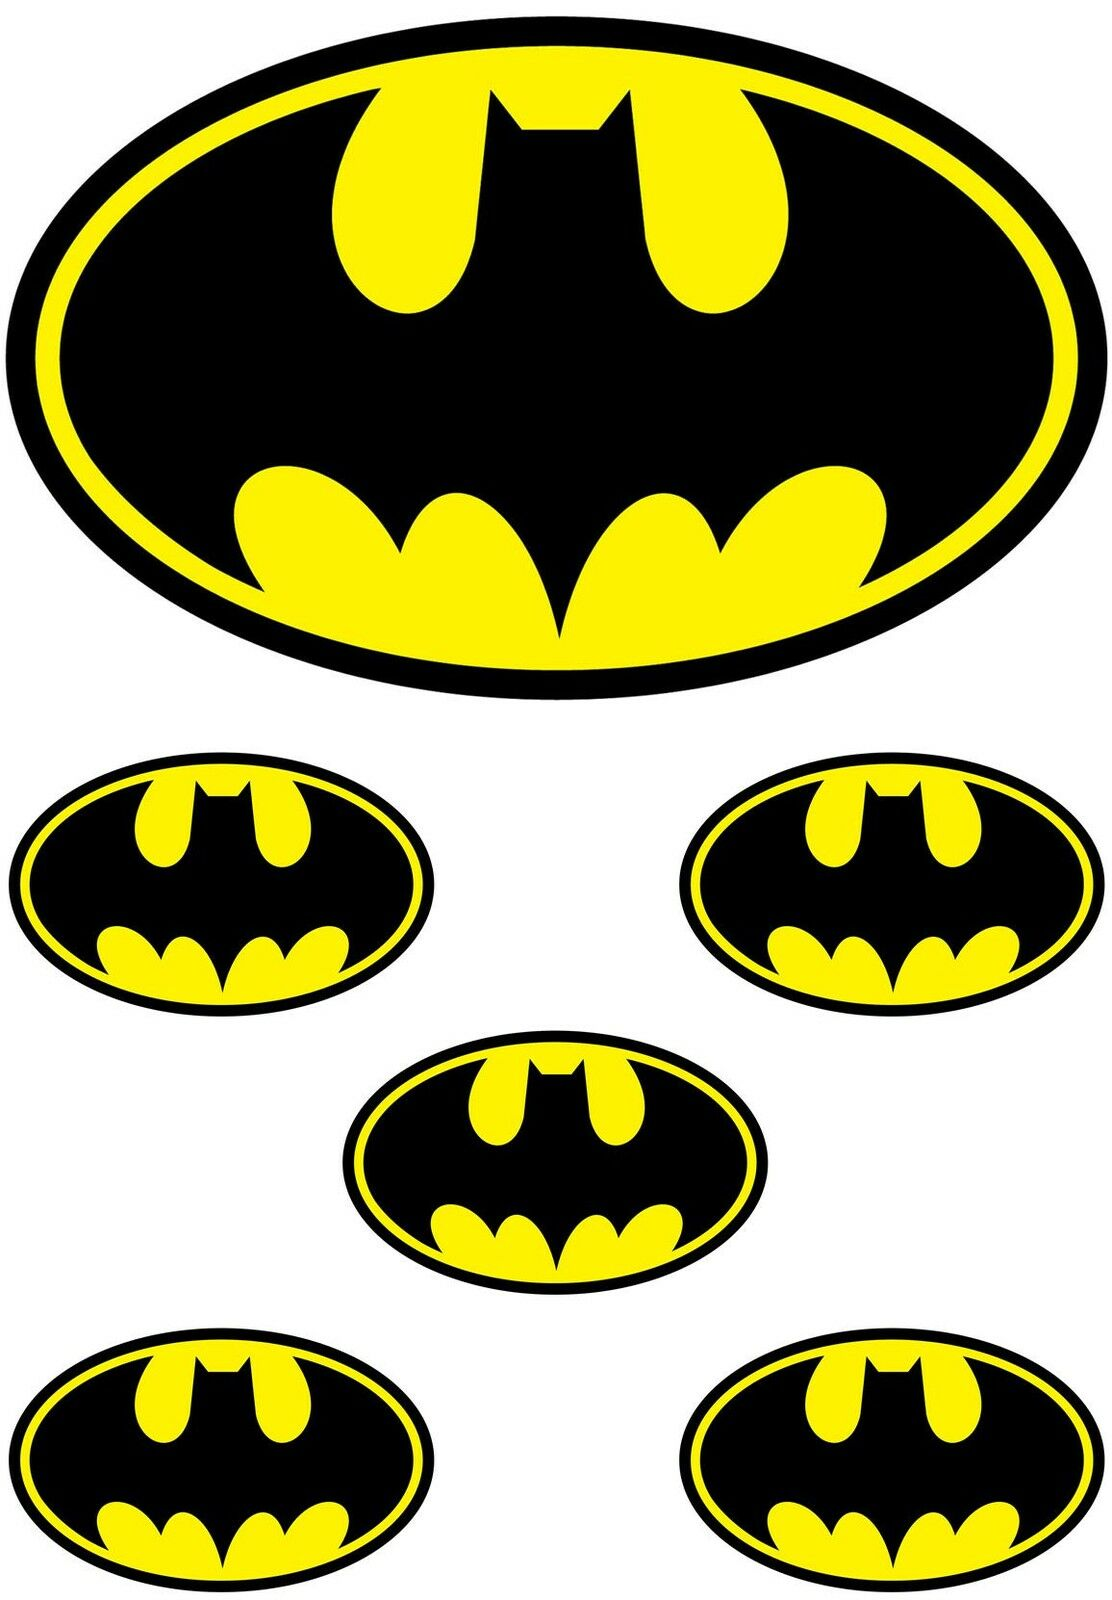 Small Batman Logo Free Small Batman Logo Png Transparent Images 43236 Pngio